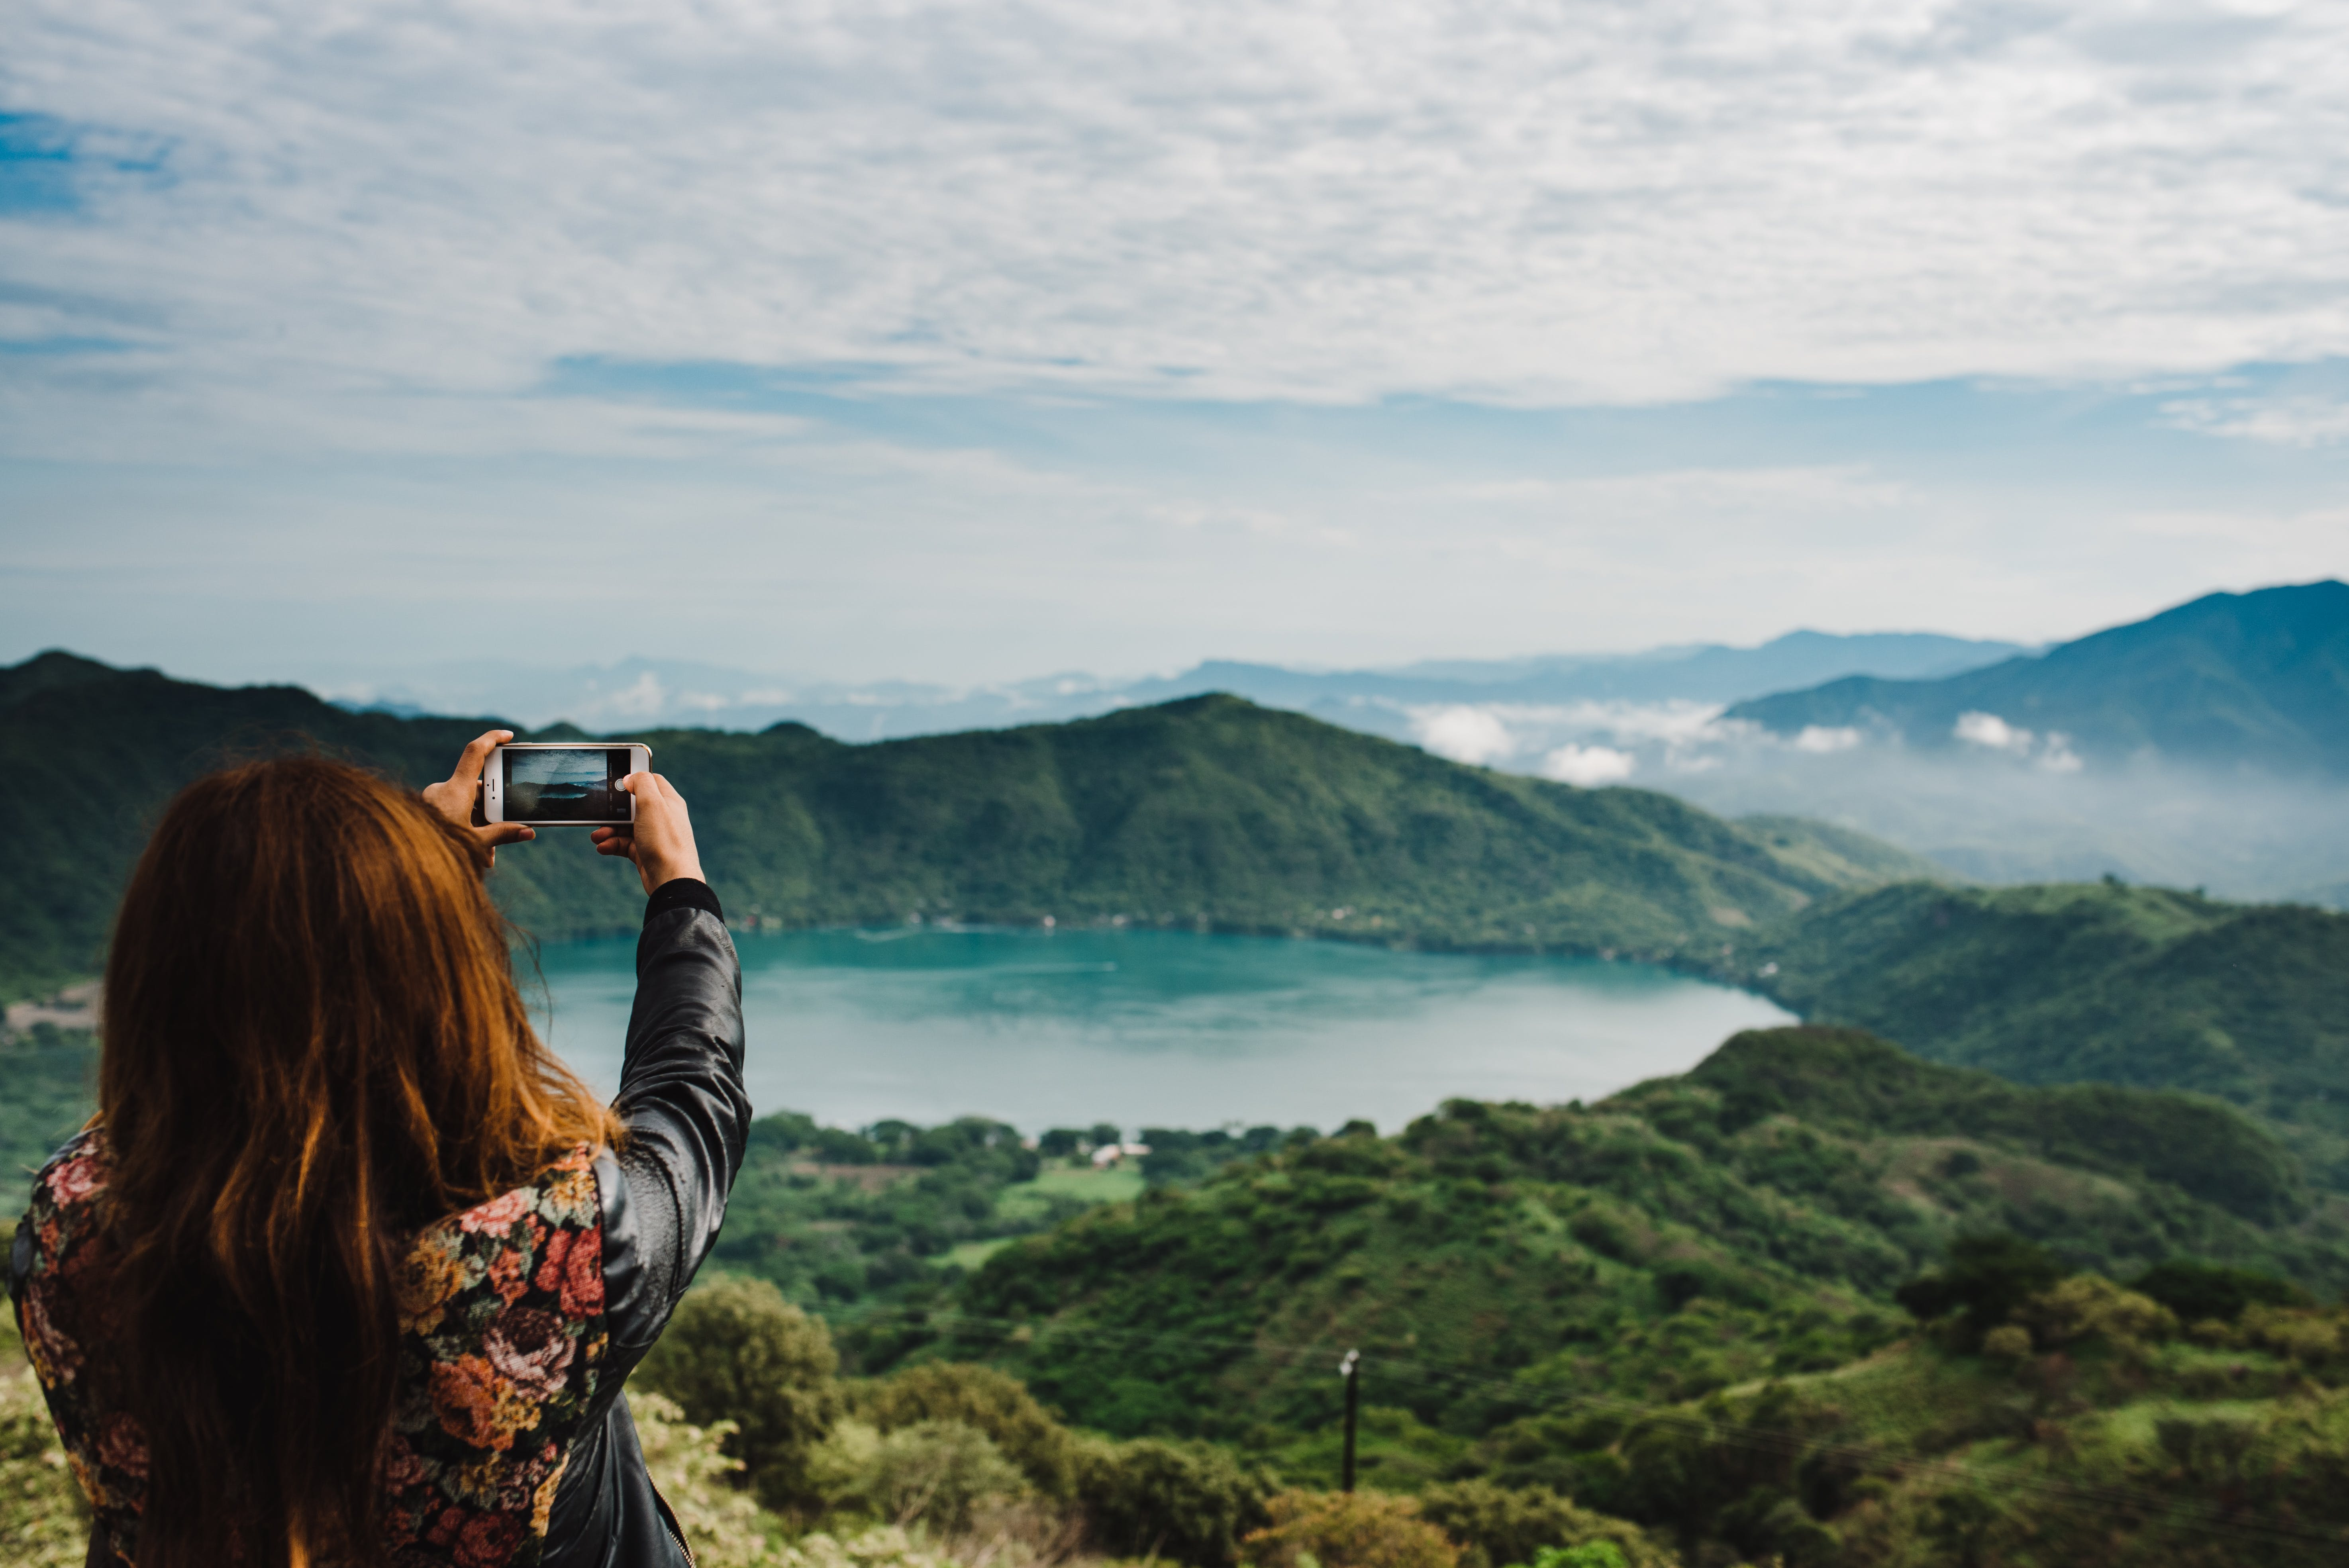 Woman Taking Photo of Green-covered Mountain